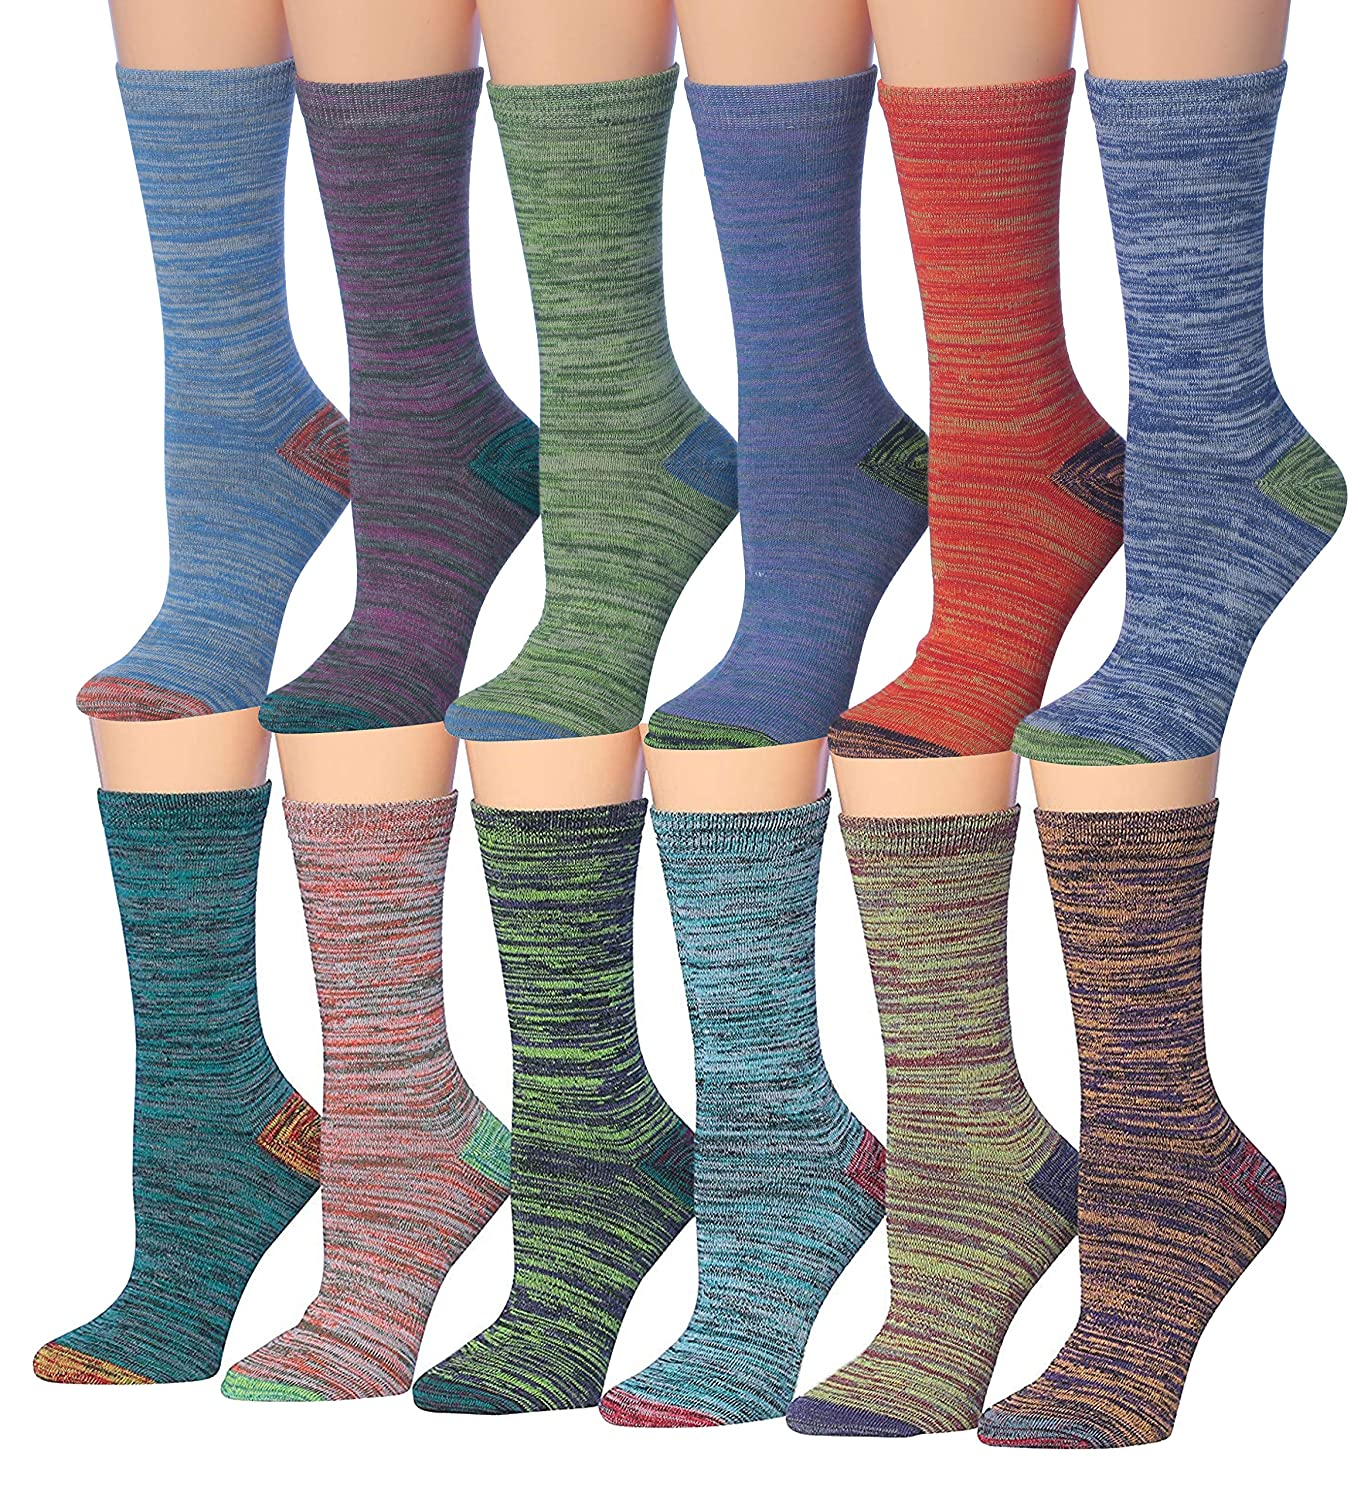 Space Dye. Vintage colors Tipi Toe Women's 12 Pairs colorful Patterned Crew Socks